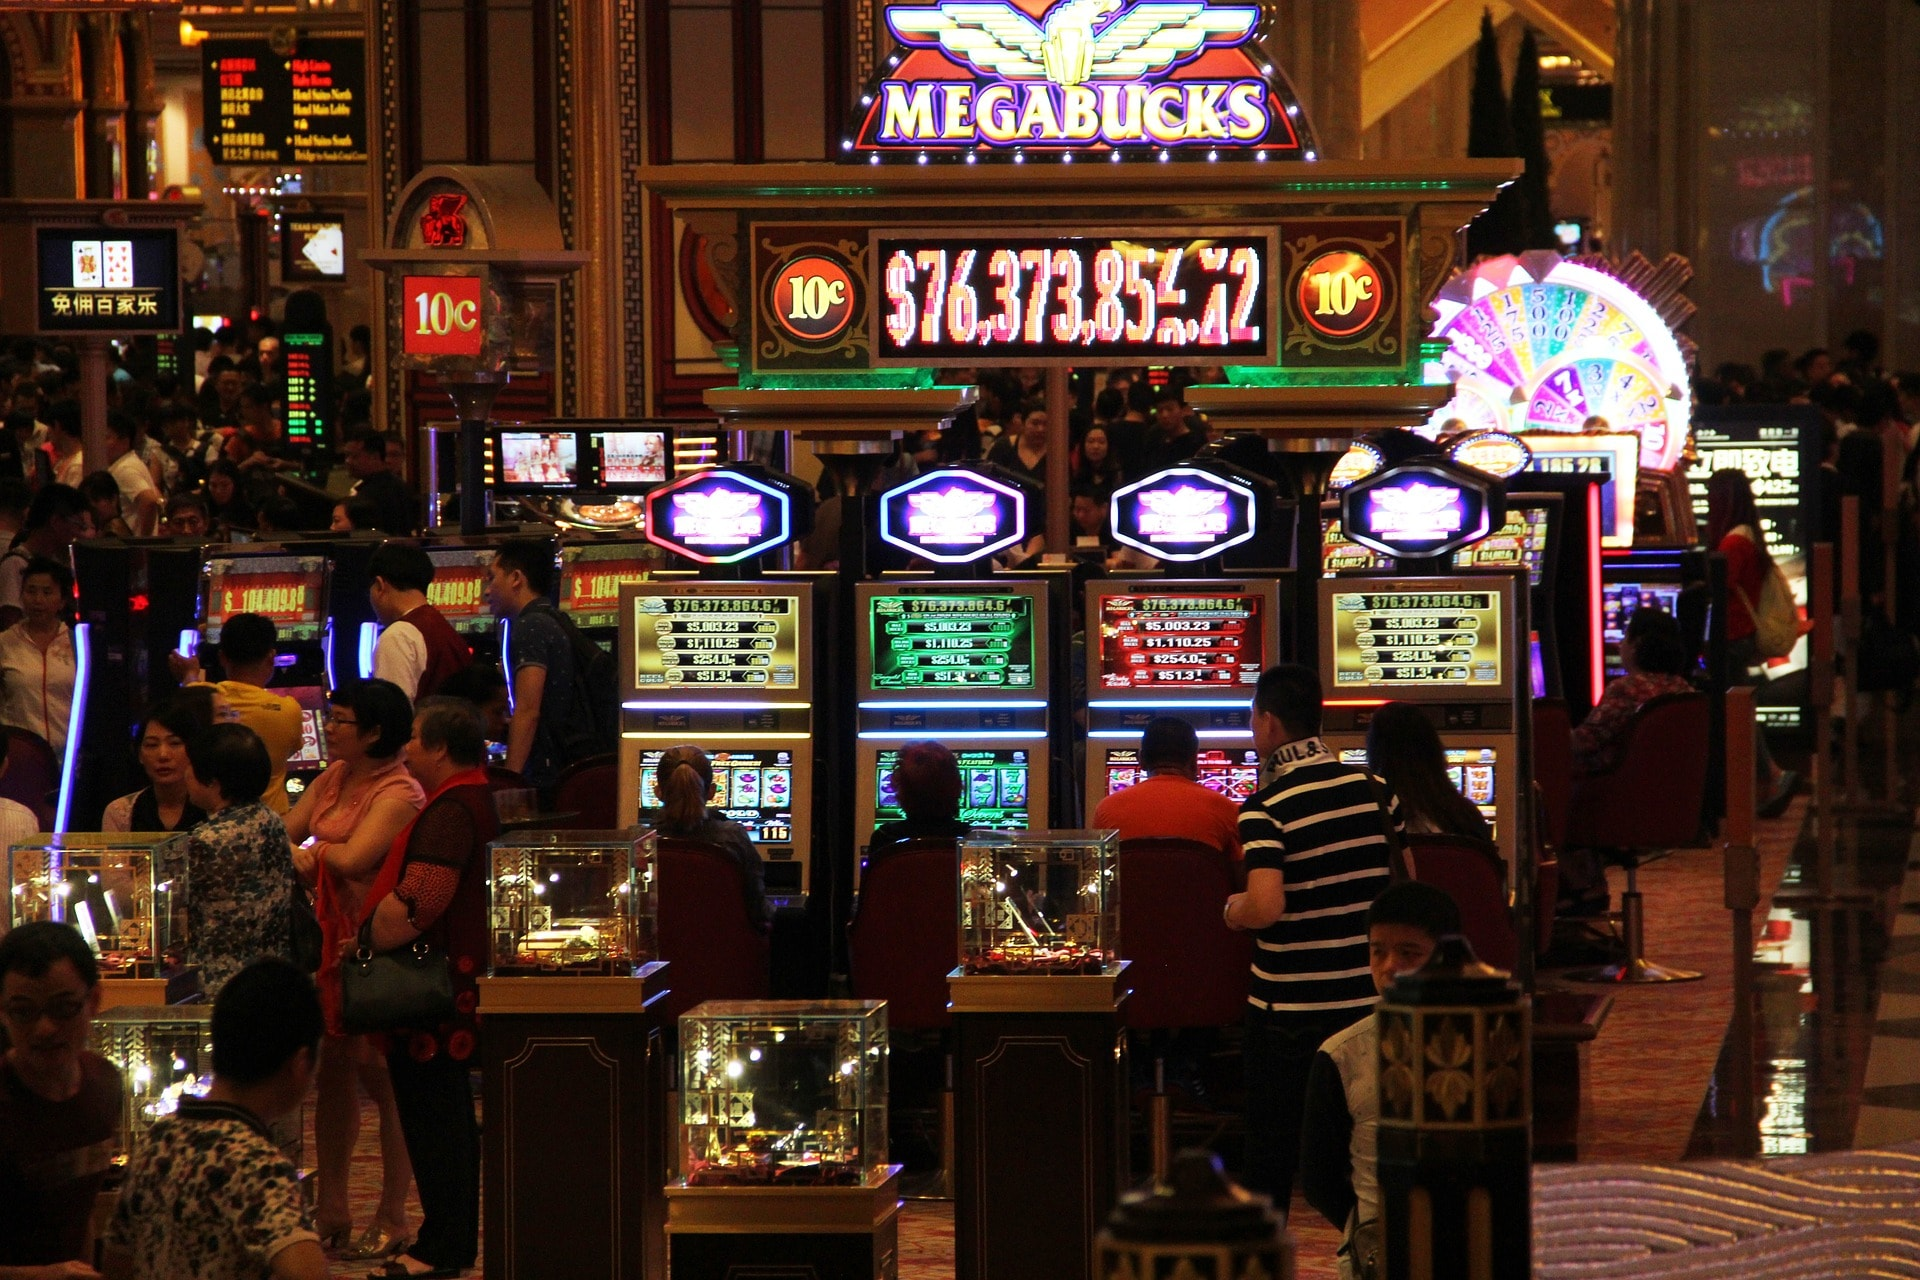 Macau casinos at Chinese New Year